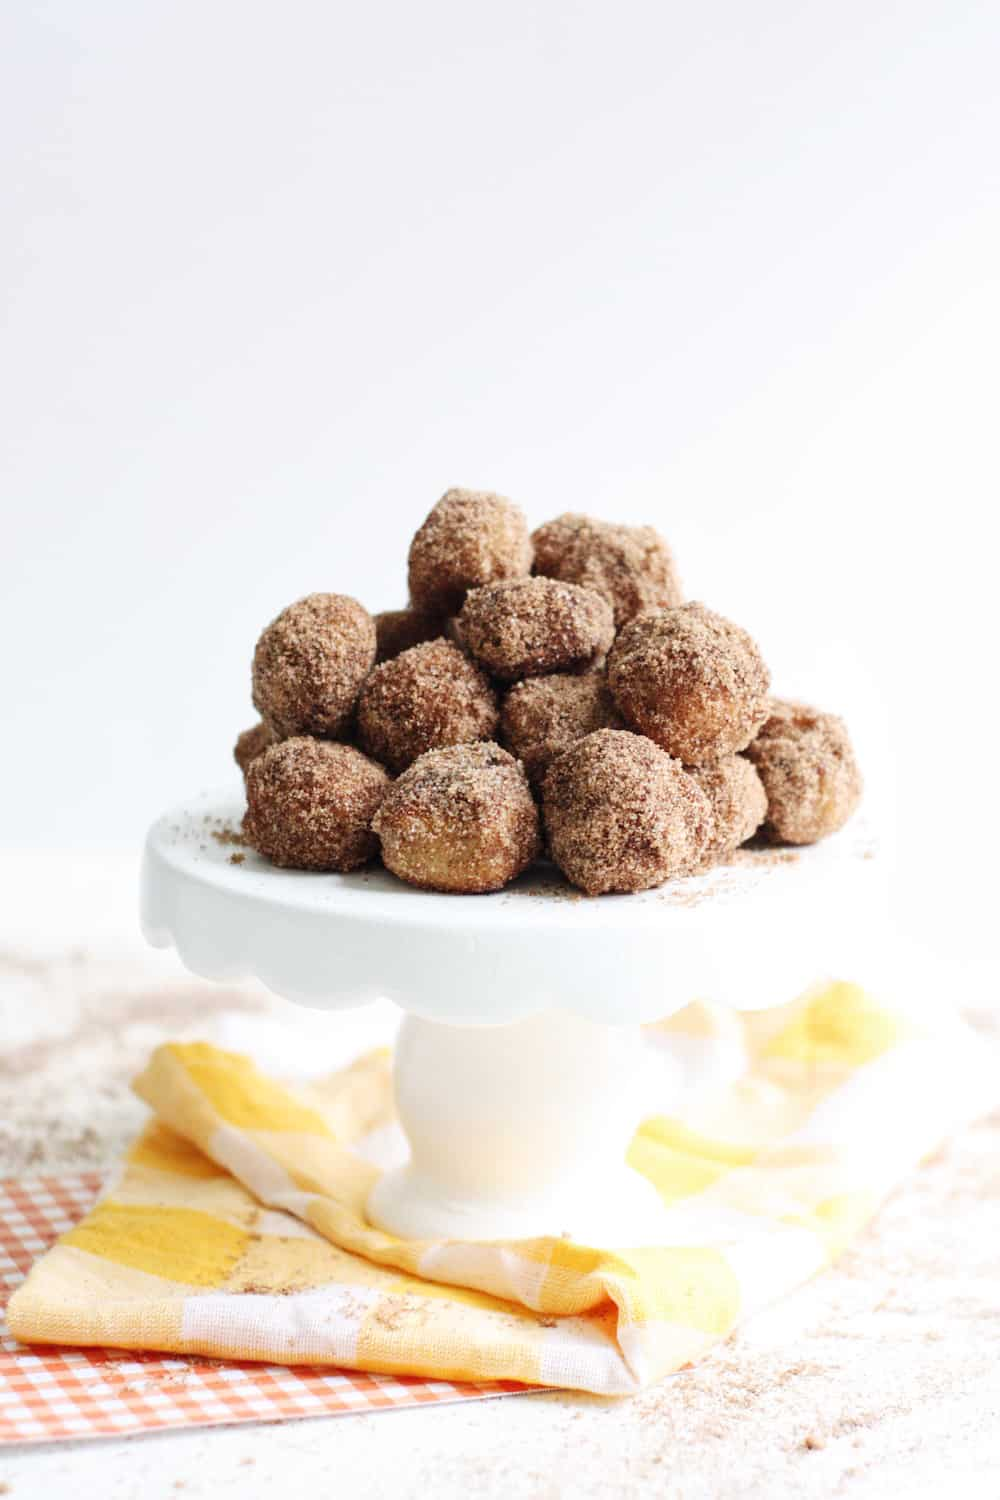 Baked Homemade Donut Holes